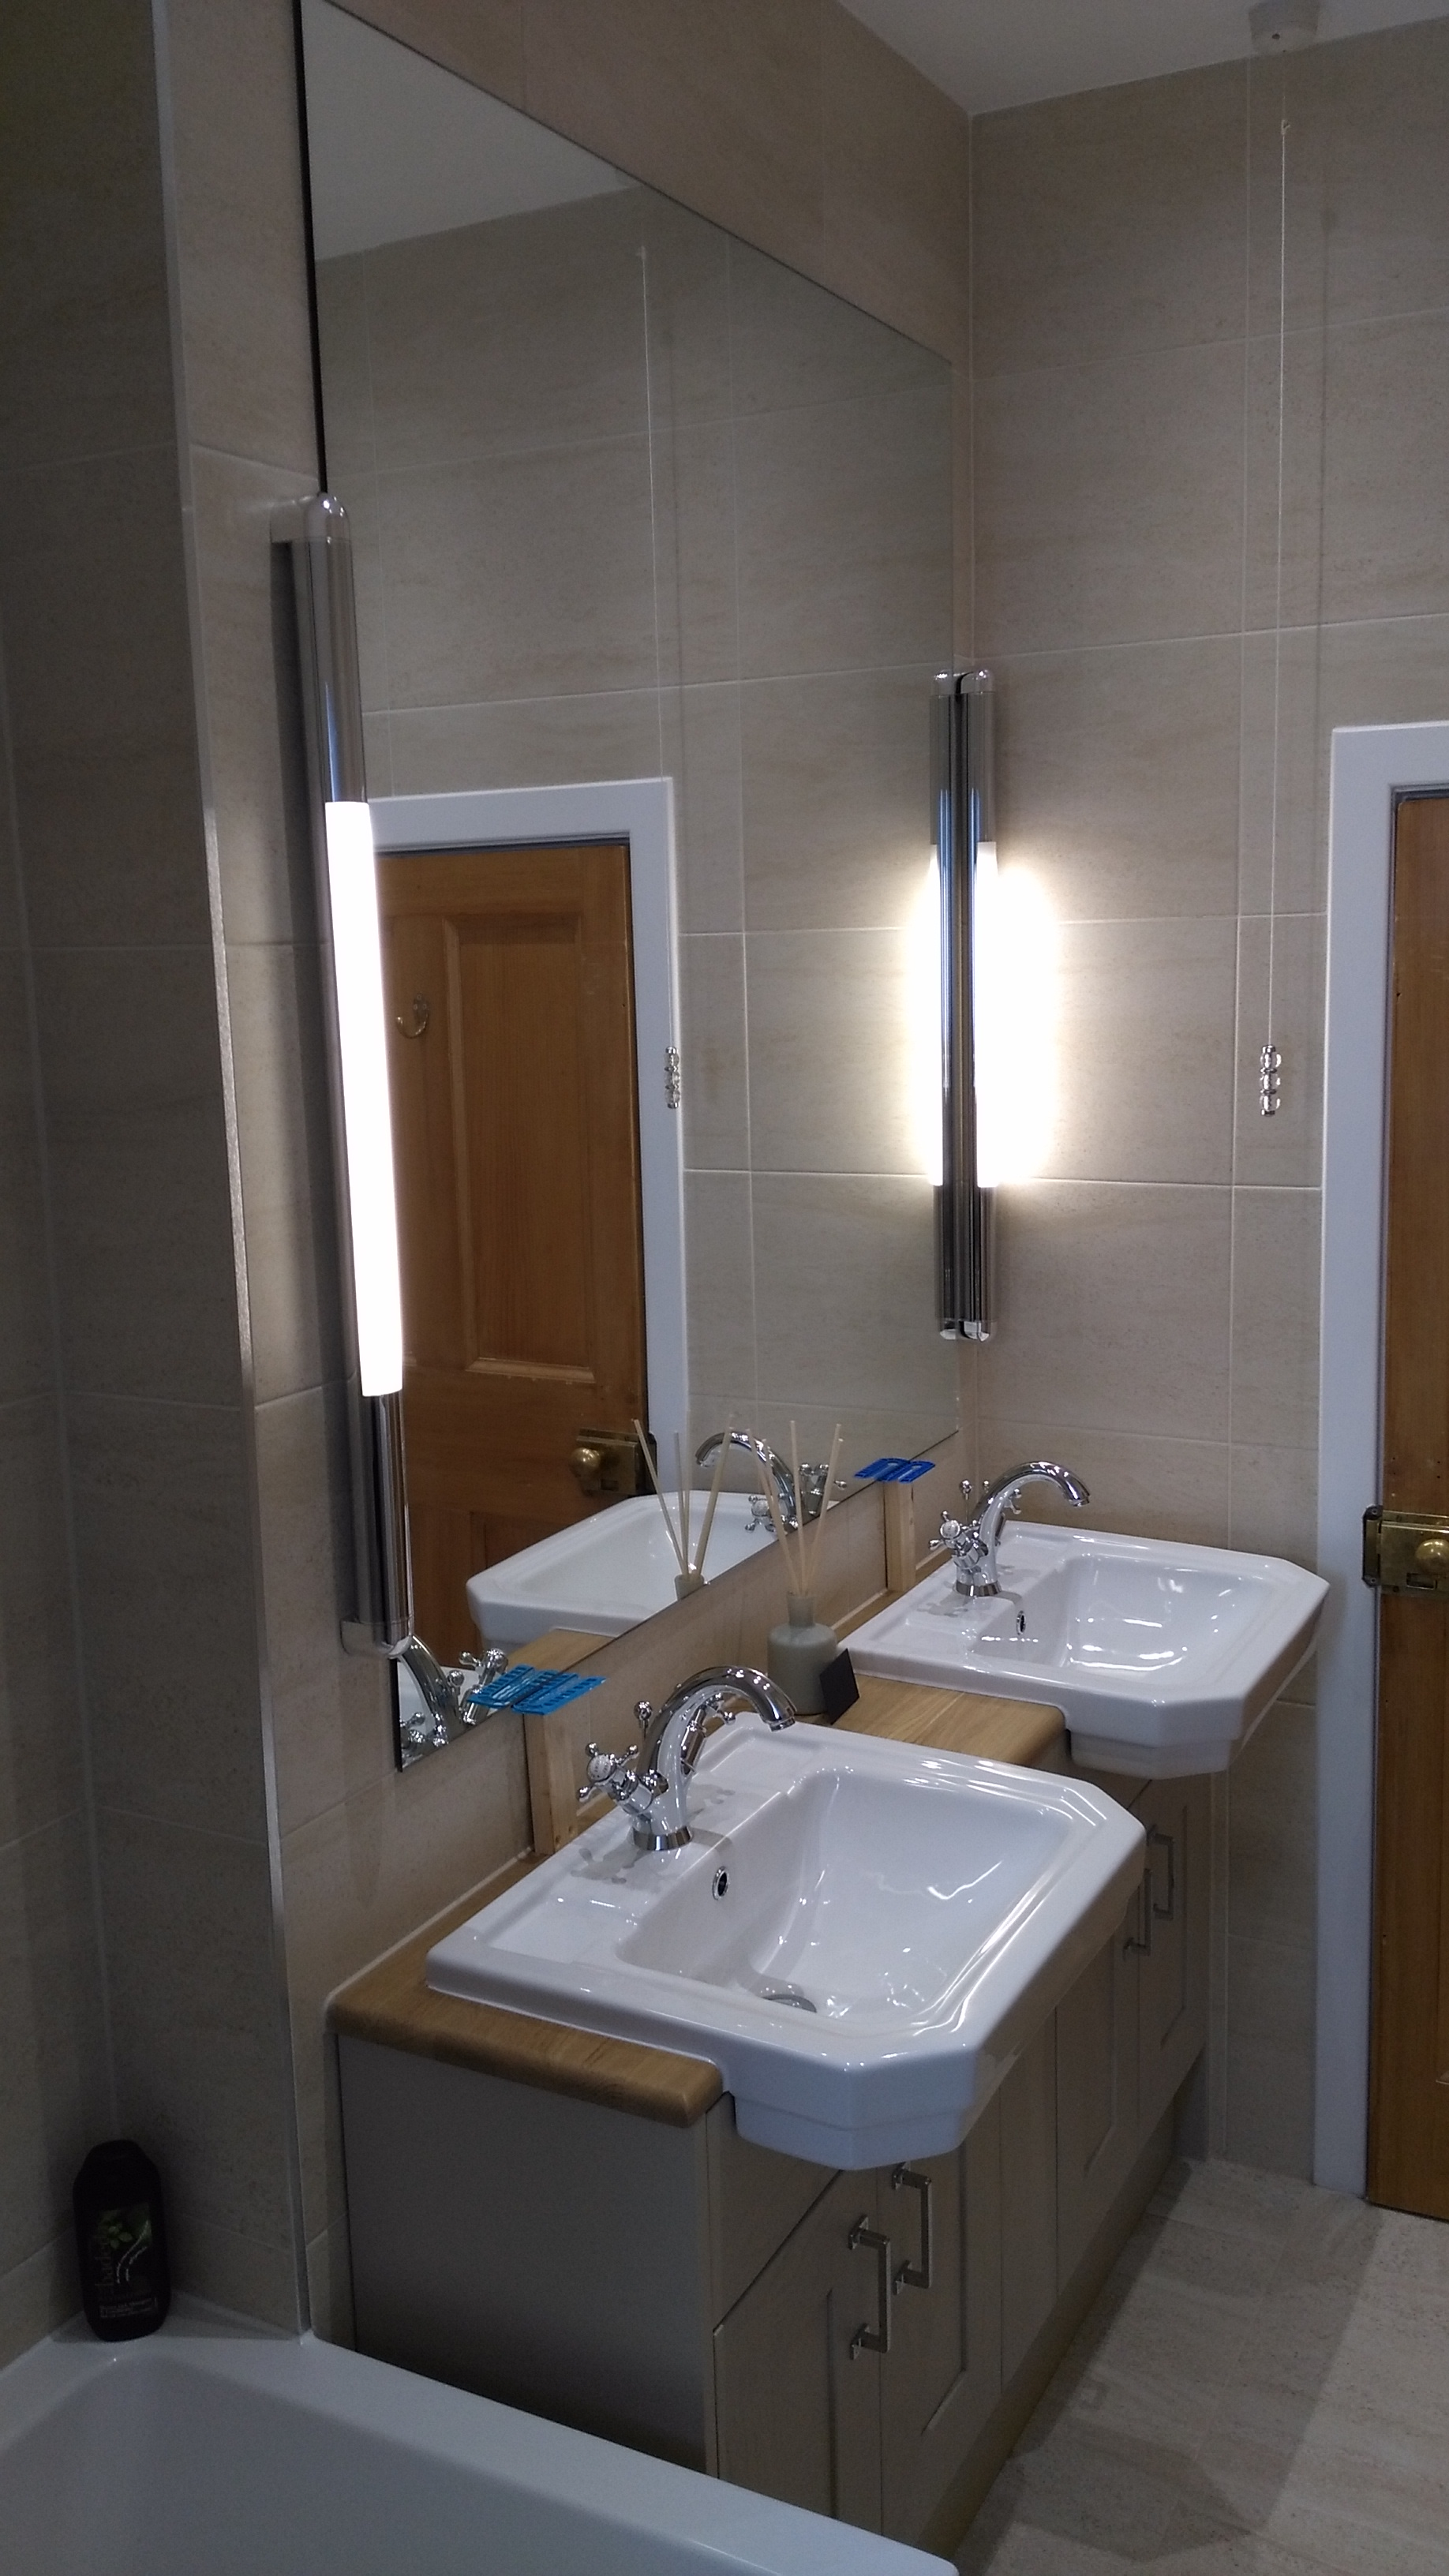 Twin sink bathroom with larger mirror